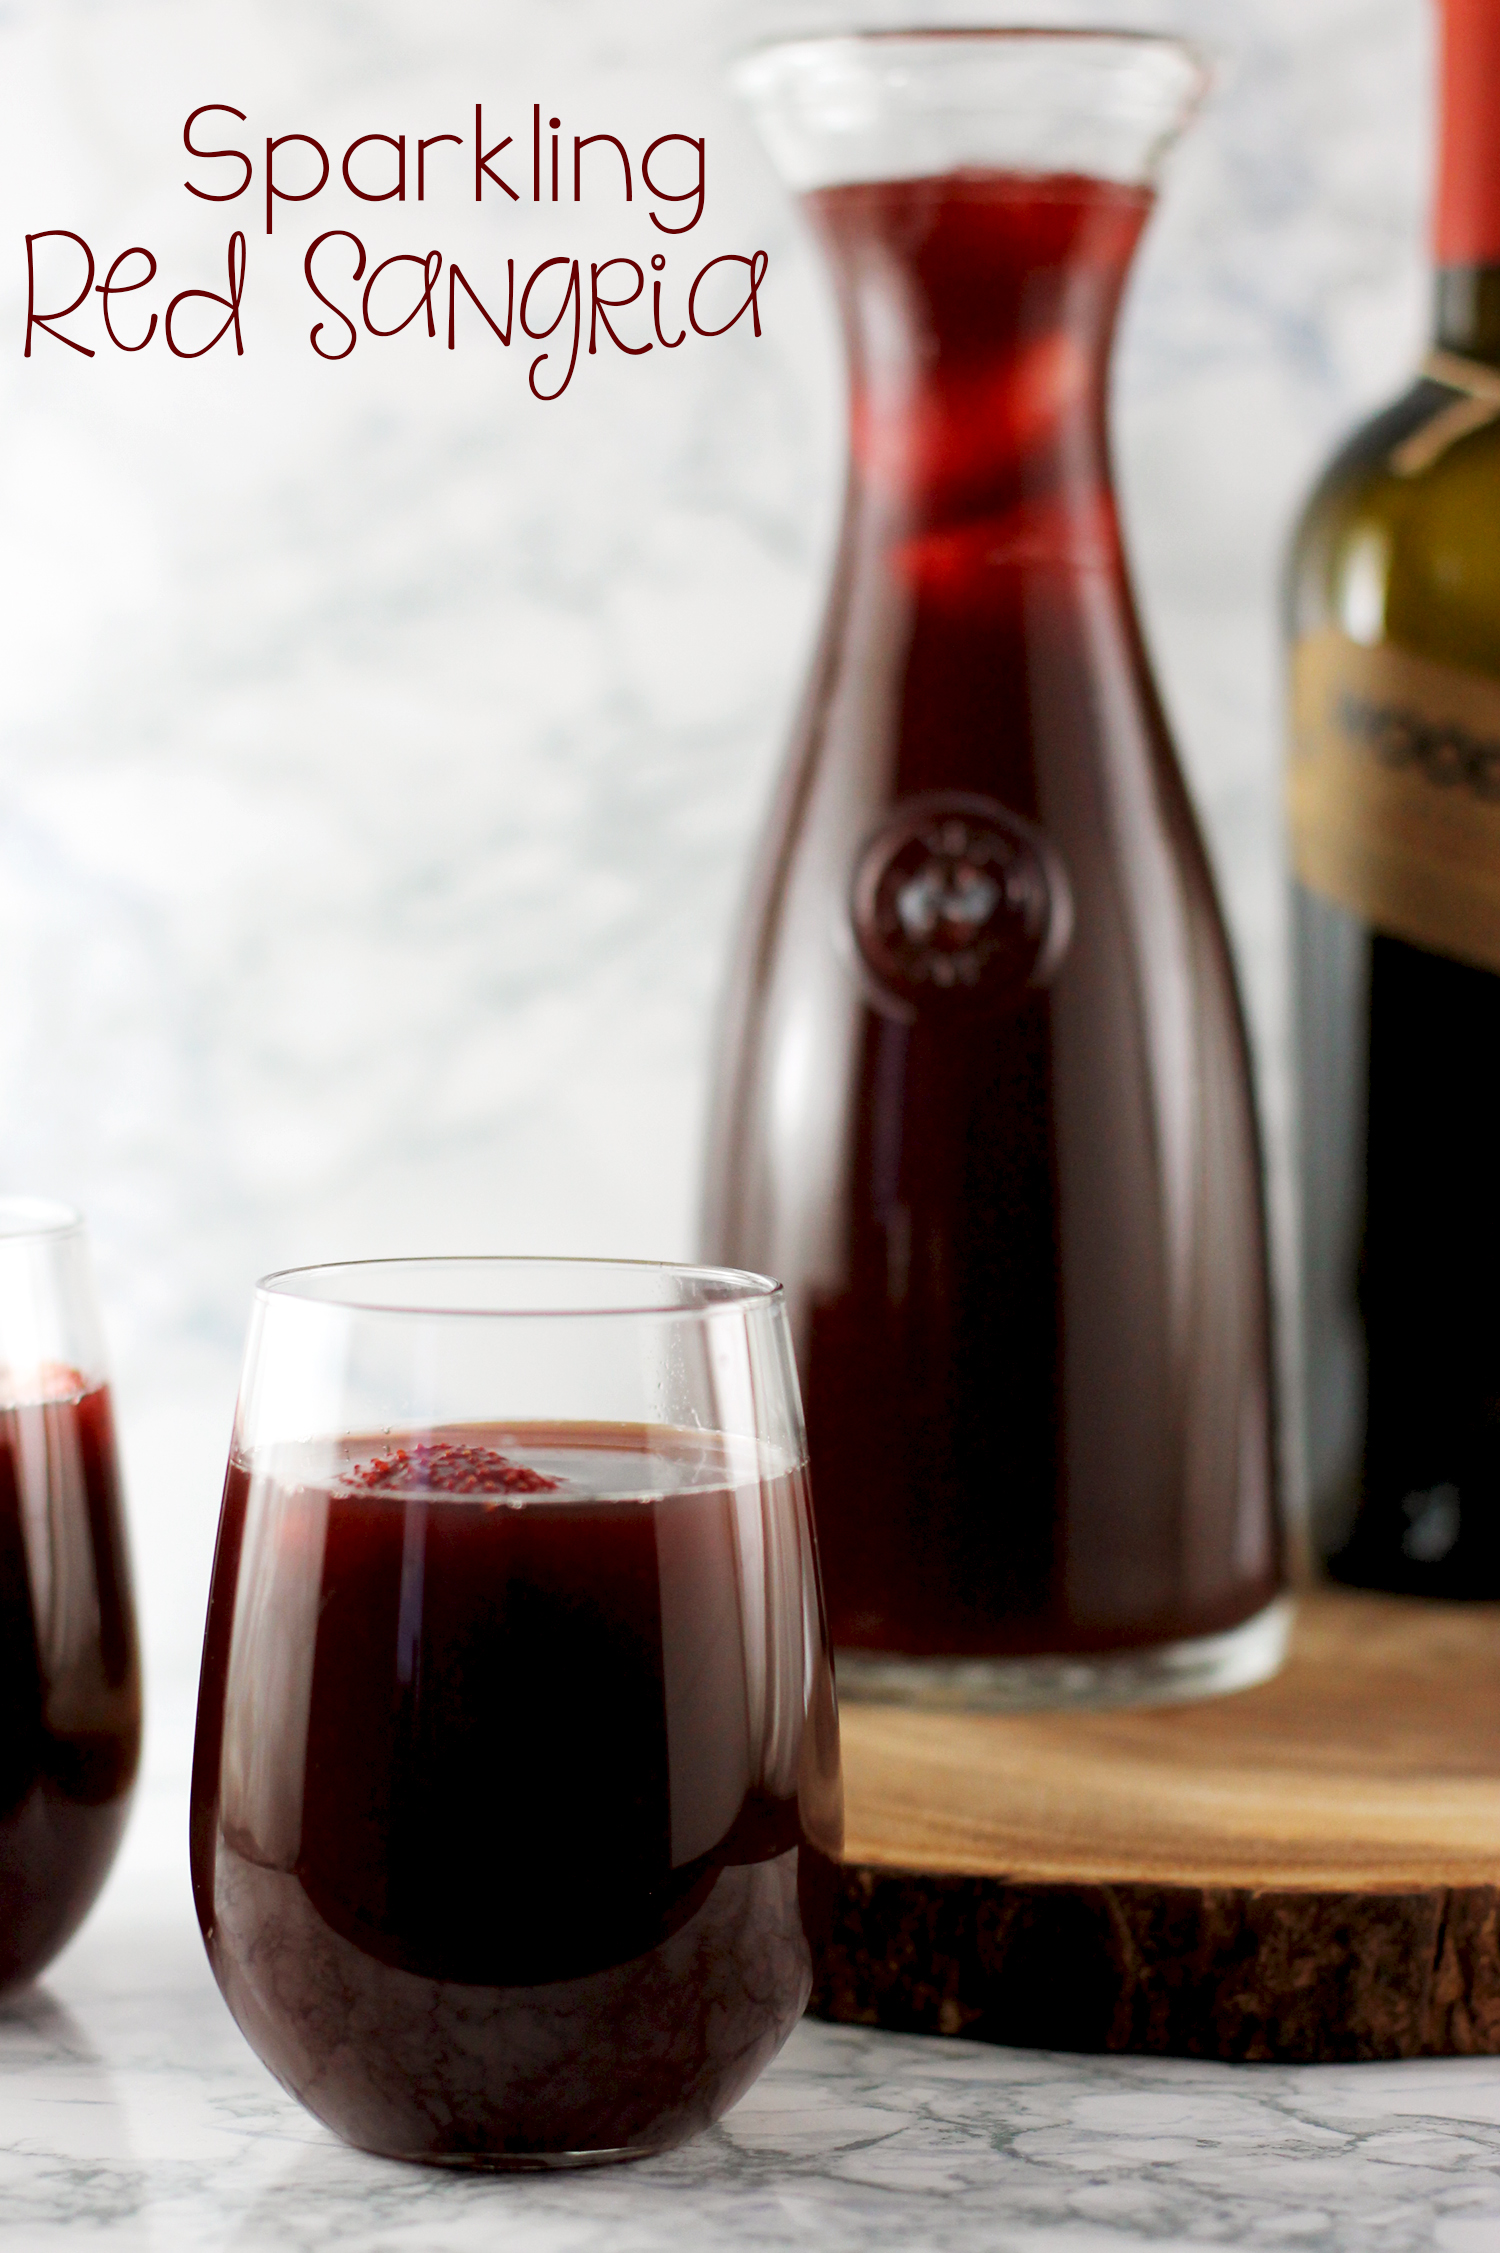 This sparkling red sangria is super easy to make, and tastes amazing!!!